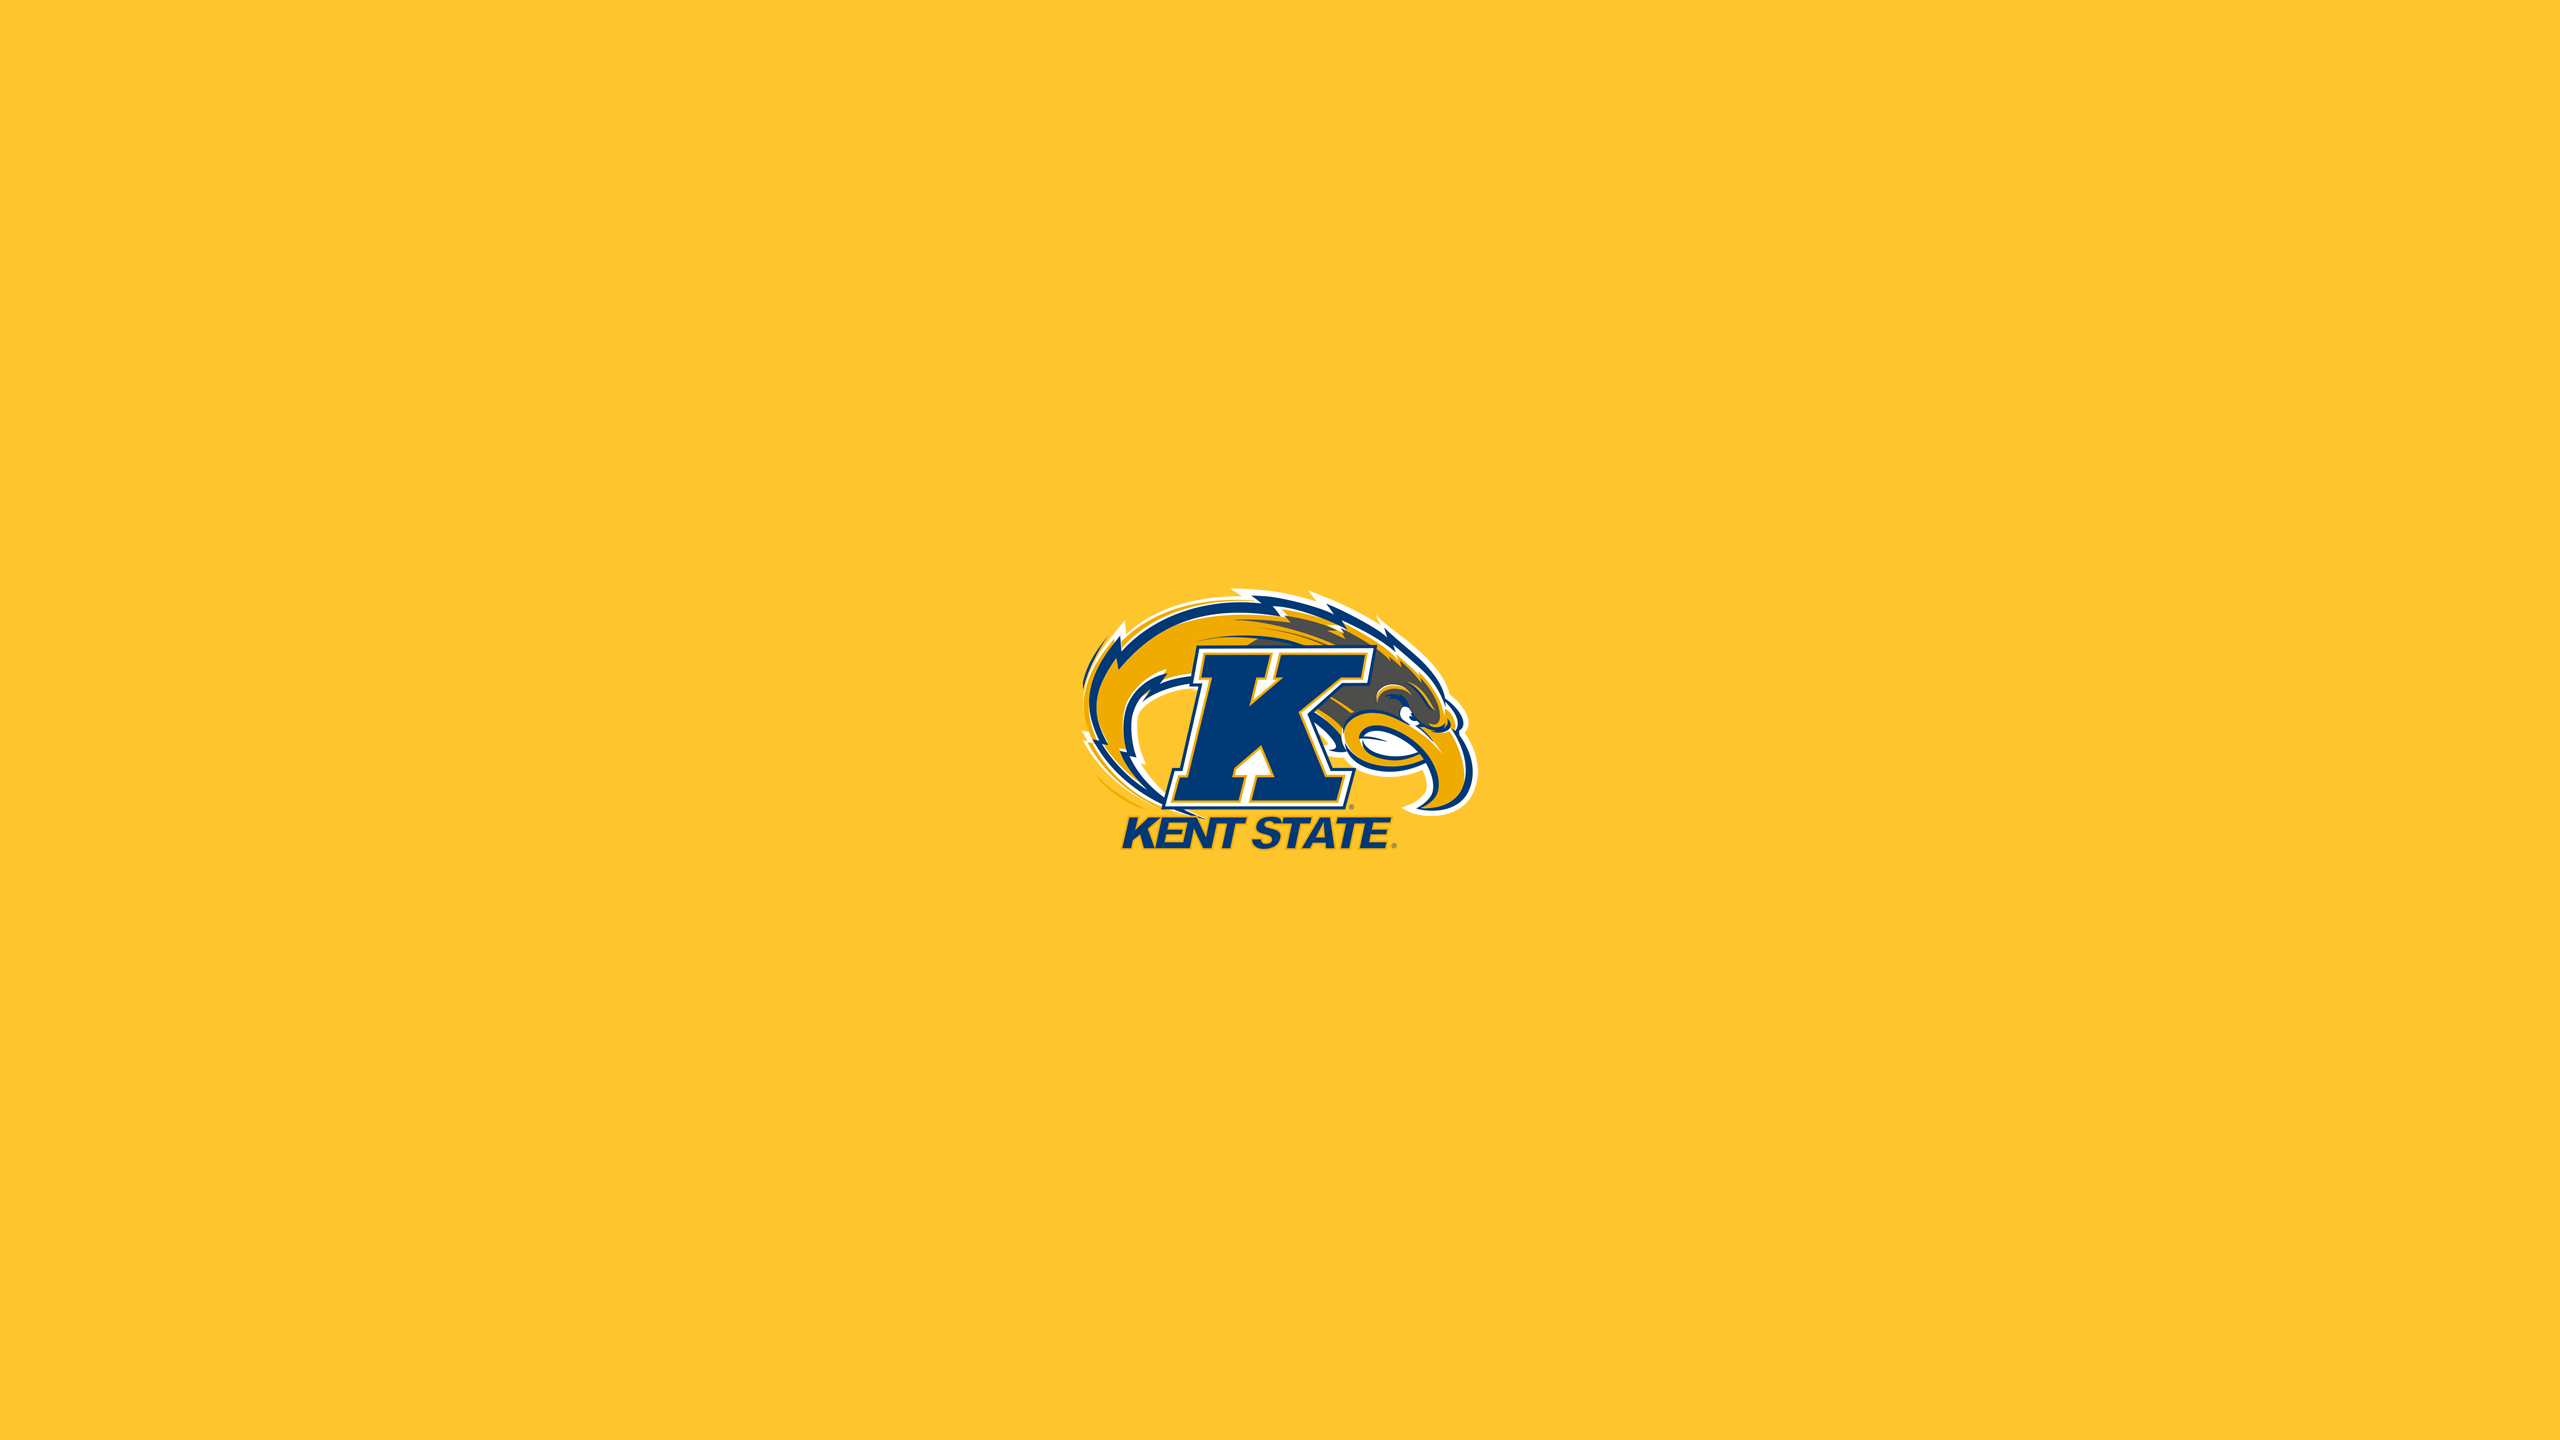 Kent State University Golden Flashes